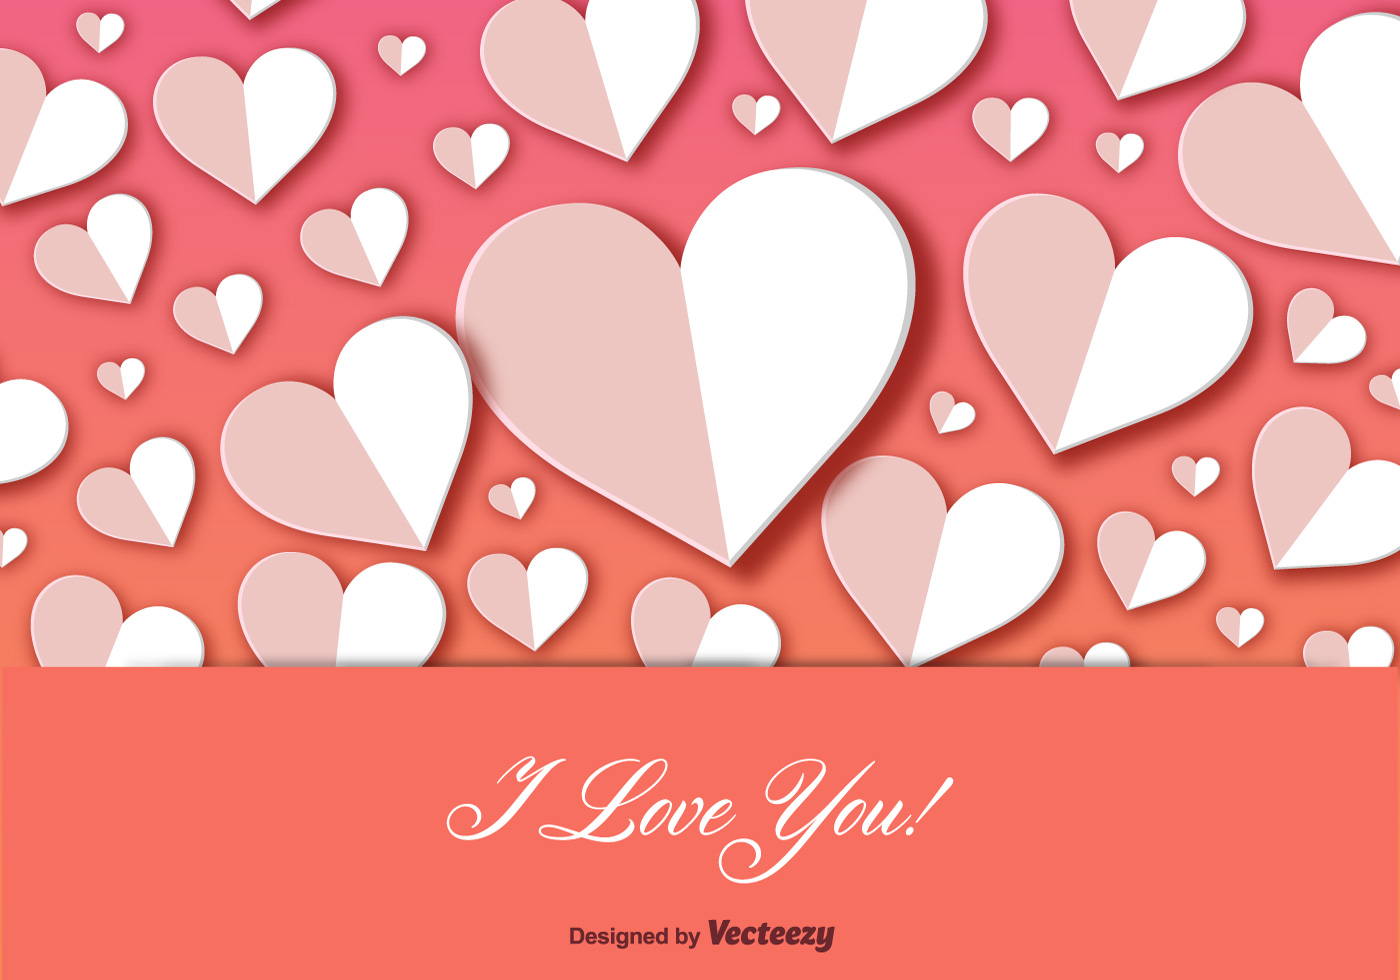 Download I Love You Postcard Background Vector - Download Free ...